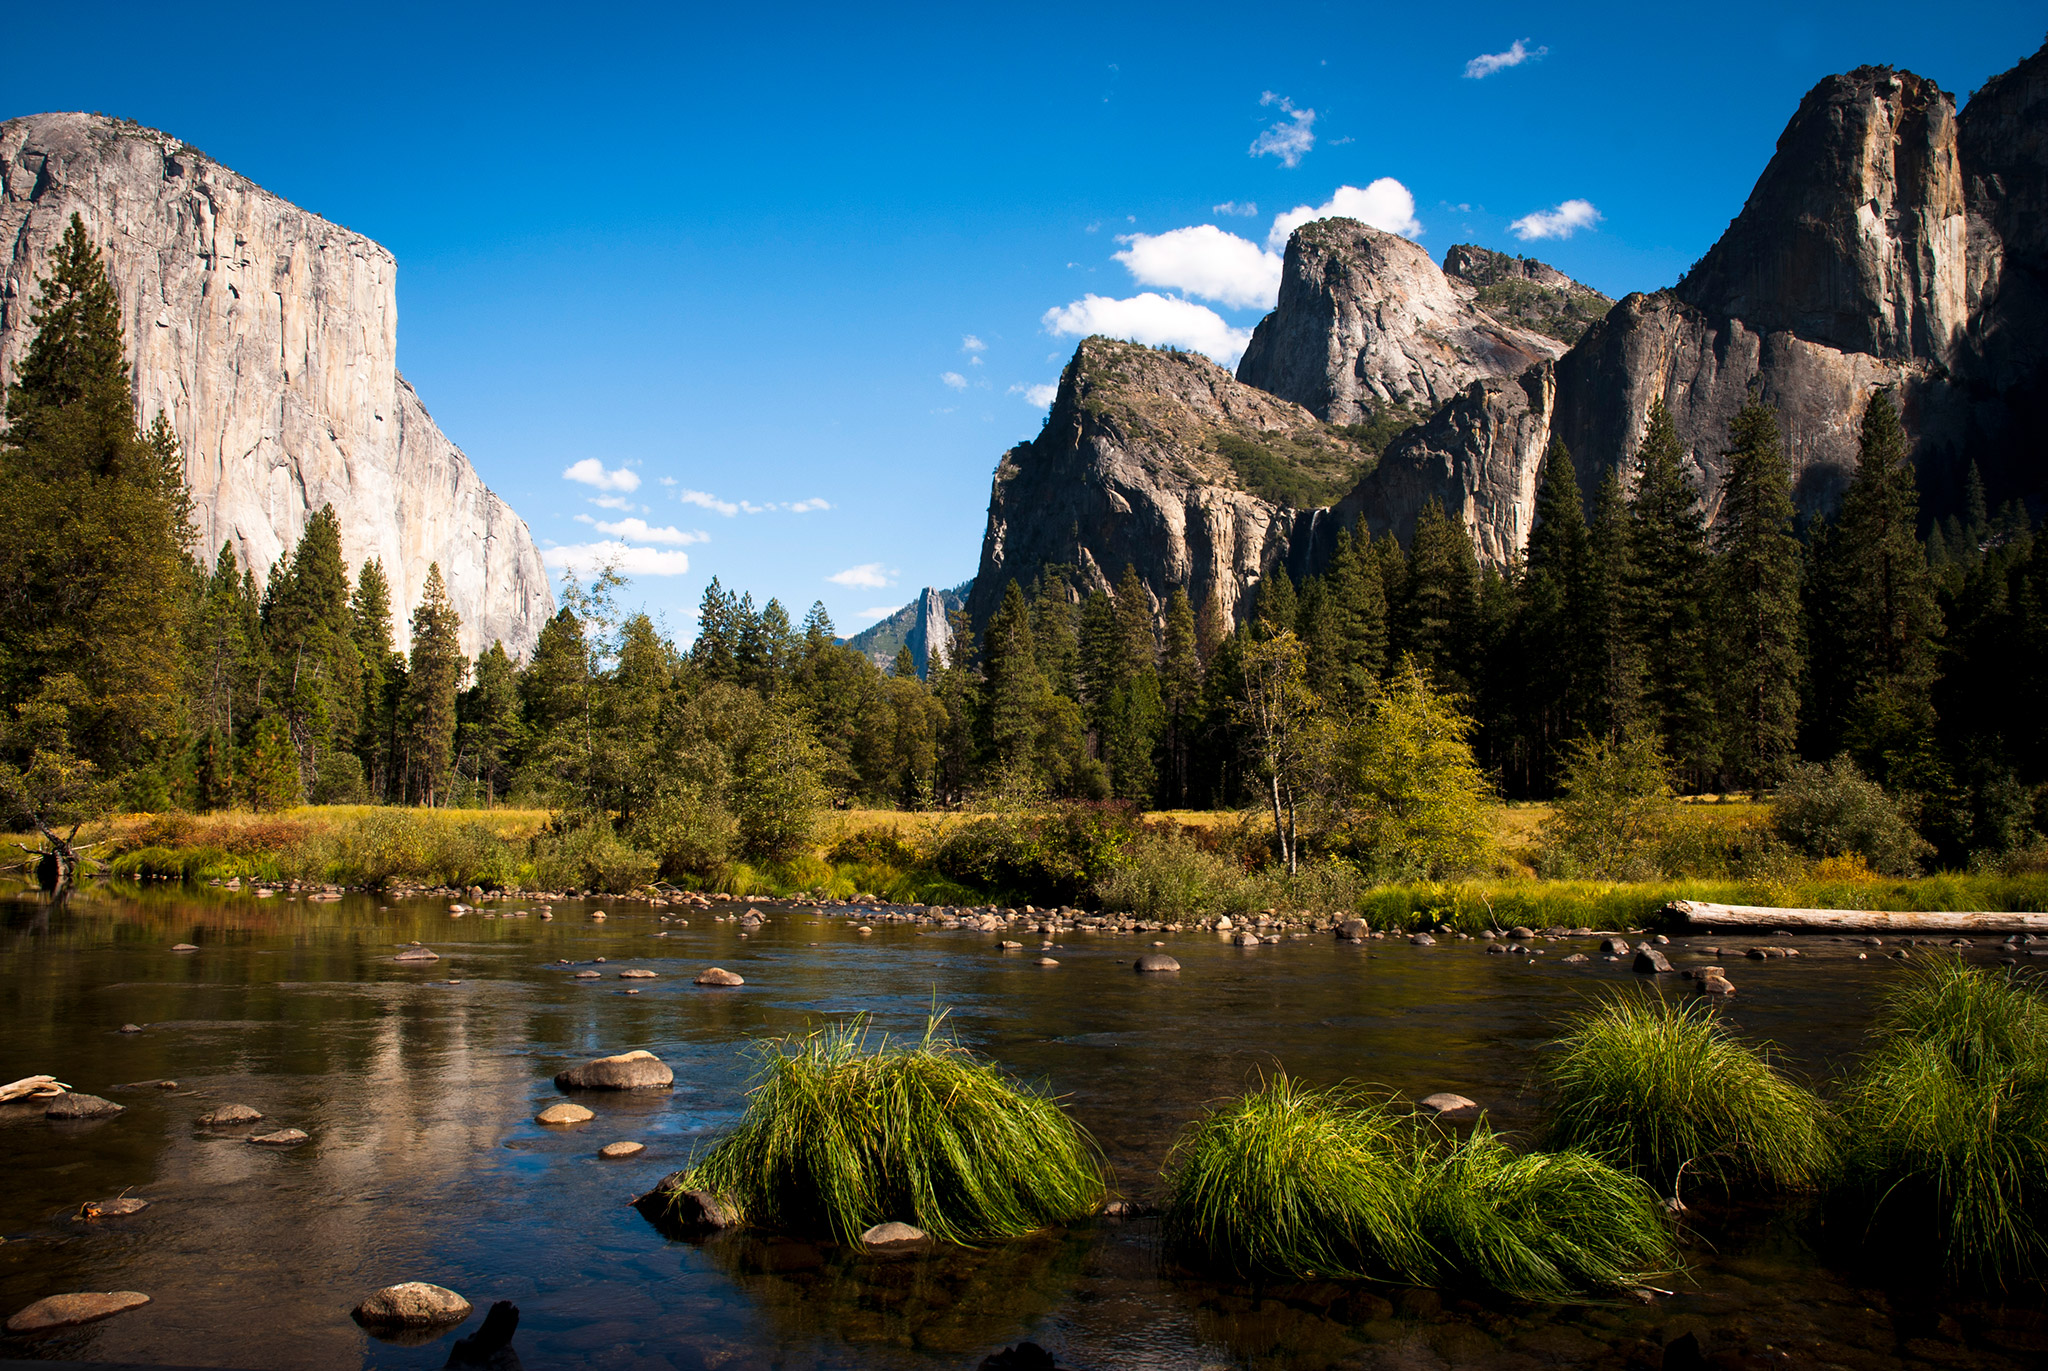 yosemite-national-park THE MOST BEAUTIFUL PLACES TO BE TRAVELED